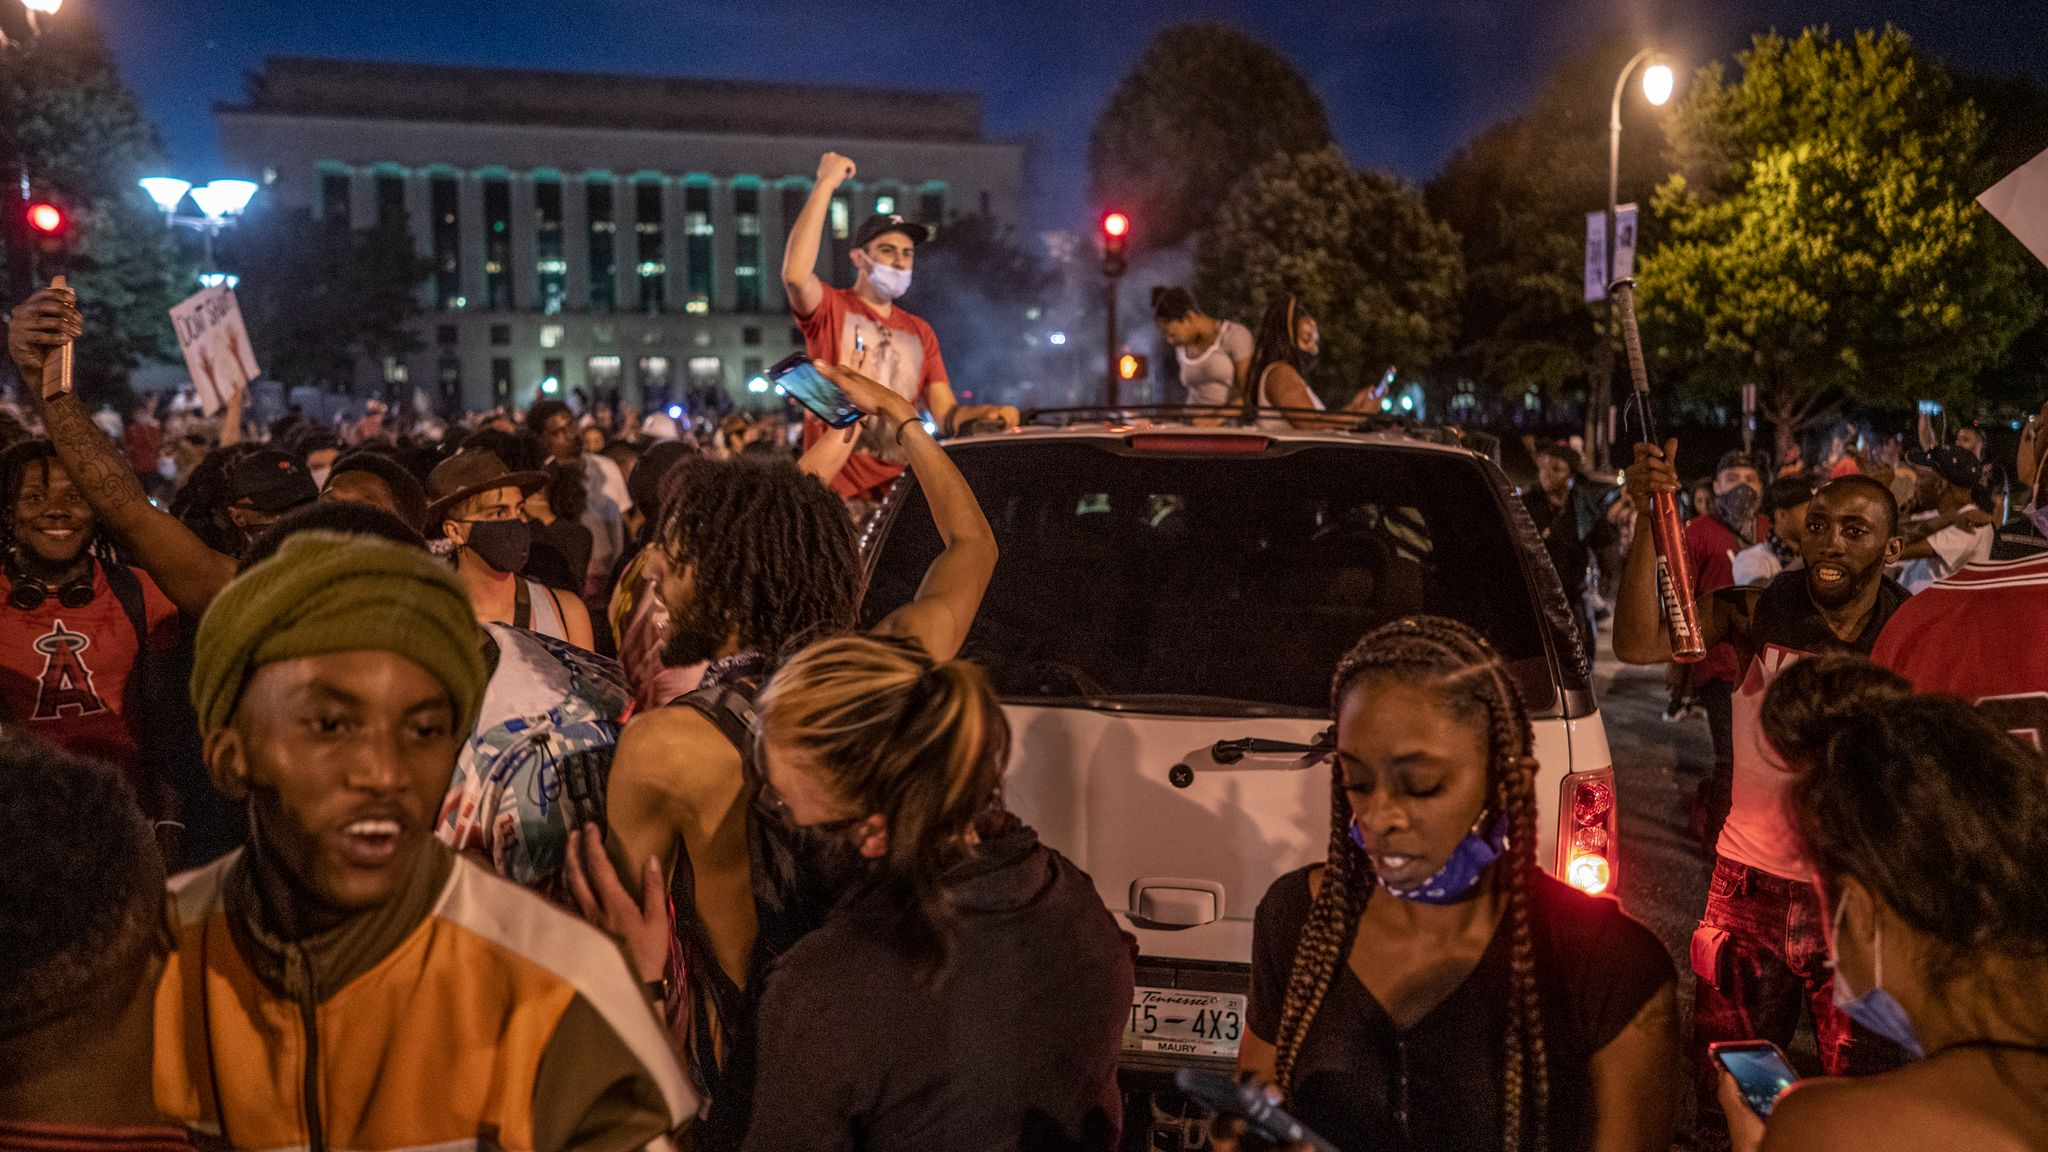 Nashville, Tenn., May 30 - An earlier peaceful demonstration devolved into a riot with protestors pouring into downtown Nashville streets. (Photo: John Partipilo)